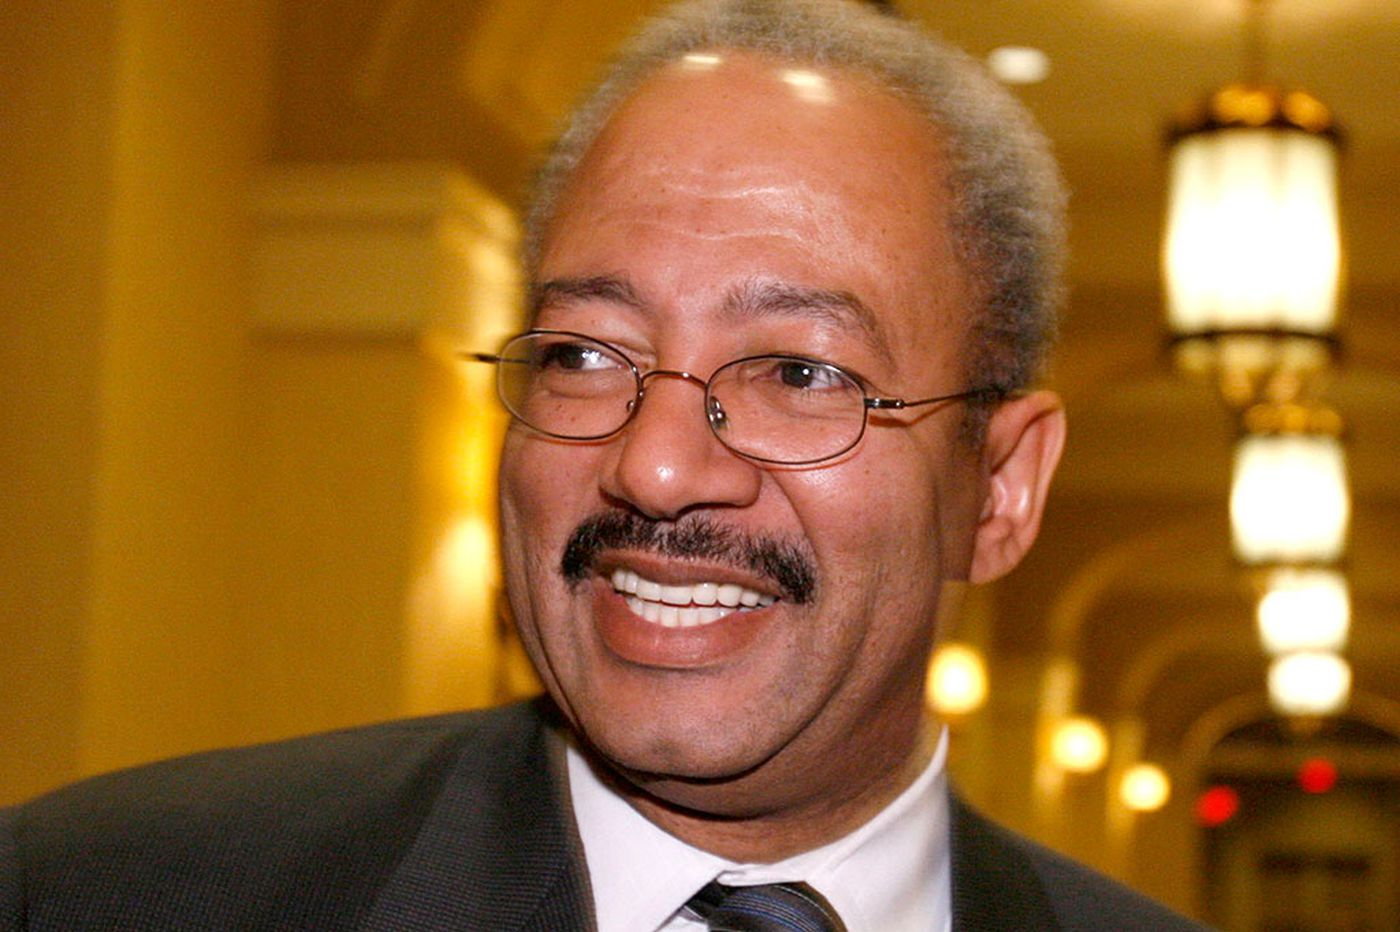 Ex-U.S. Rep. Chaka Fattah sentenced again to 10 years in prison